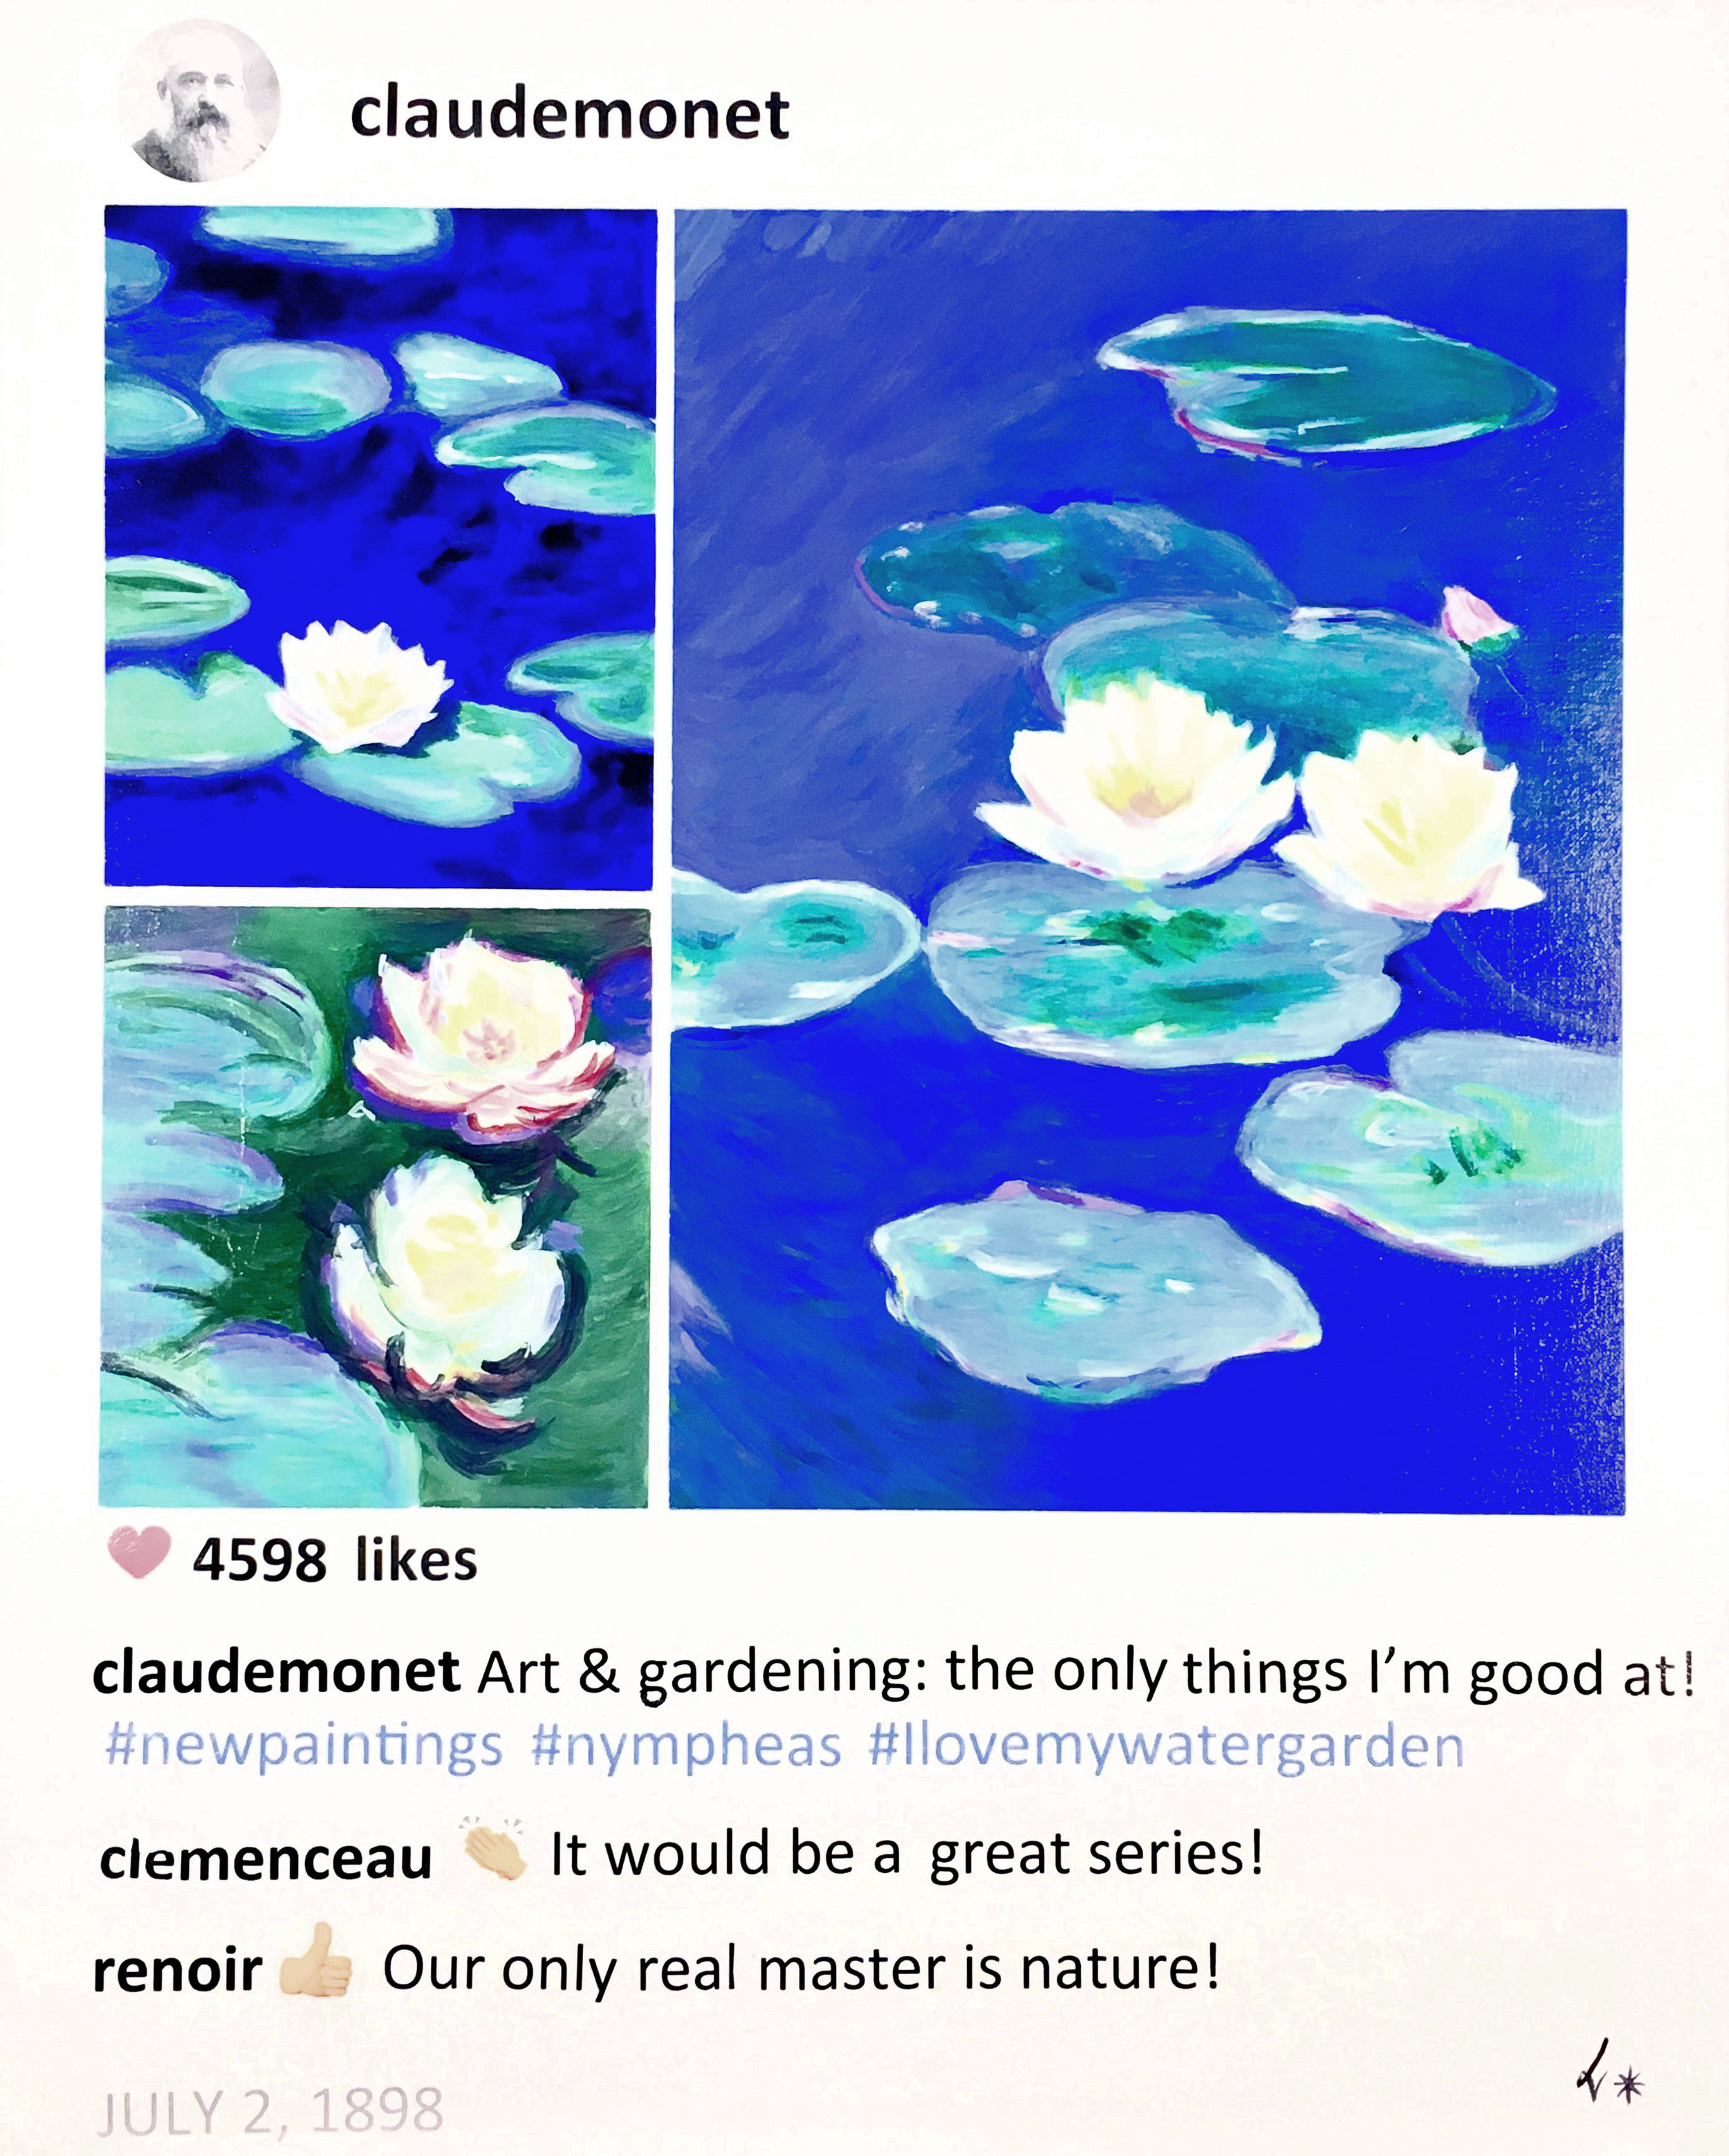 """- #story.behind.the.artIn 1898 Claude Monet has added a water garden to his Giverny property and he starts to paint a few nympheas. He will expand this series until the end of his life and create 250 paintings.In this Post, Monet shares details of his first paintings. His close friend, the politician Georges Clemenceau will be key in the project of the the Musee de l'Orangerie in Paris after WWI.The comment of Renoir is based on one of his quotes """"An artist, under pain of oblivion, must have confidence in himself, and listen only to his real master: Nature"""".Sources: Ross King,Mad Enchantment: Claude Monet and the Painting of the Water Lilies, 2017. Charles F. Stuckey, Nymphéas, Paris, könemann, 2000Claude's Nympheas, 2017, Acrylic on canvas, 30 x 24 x 3/4 in."""